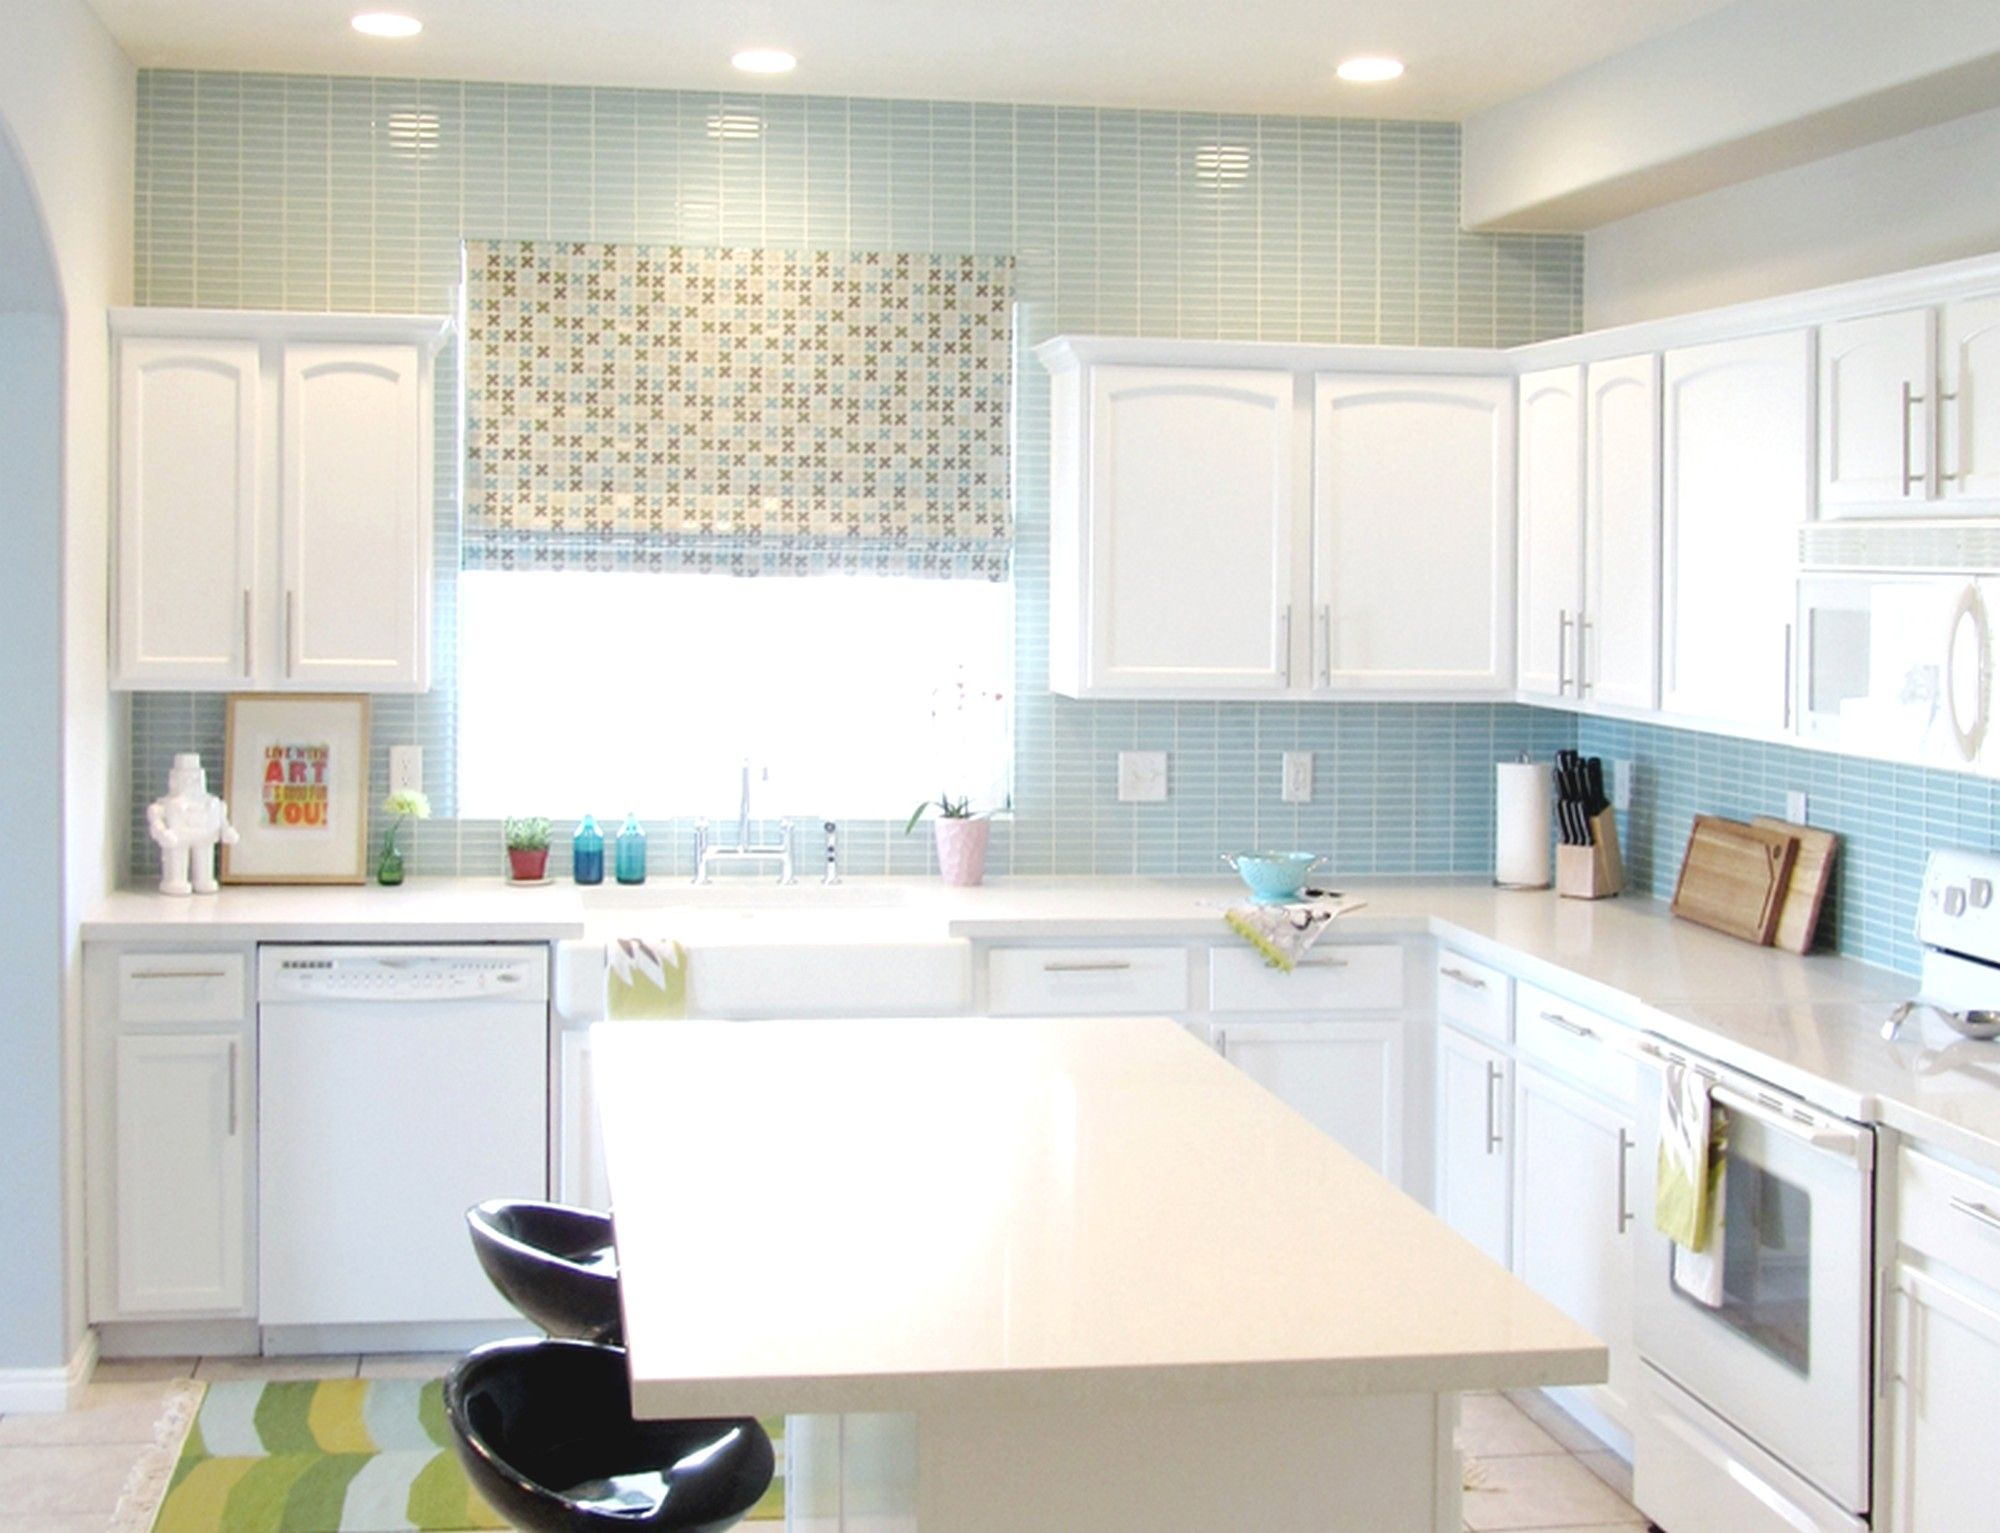 Kitchen paint colors with white cabinets google search for the lush vapor subway tile kitchen by capree kitchen backsplash tile ideas gallery dailygadgetfo Choice Image